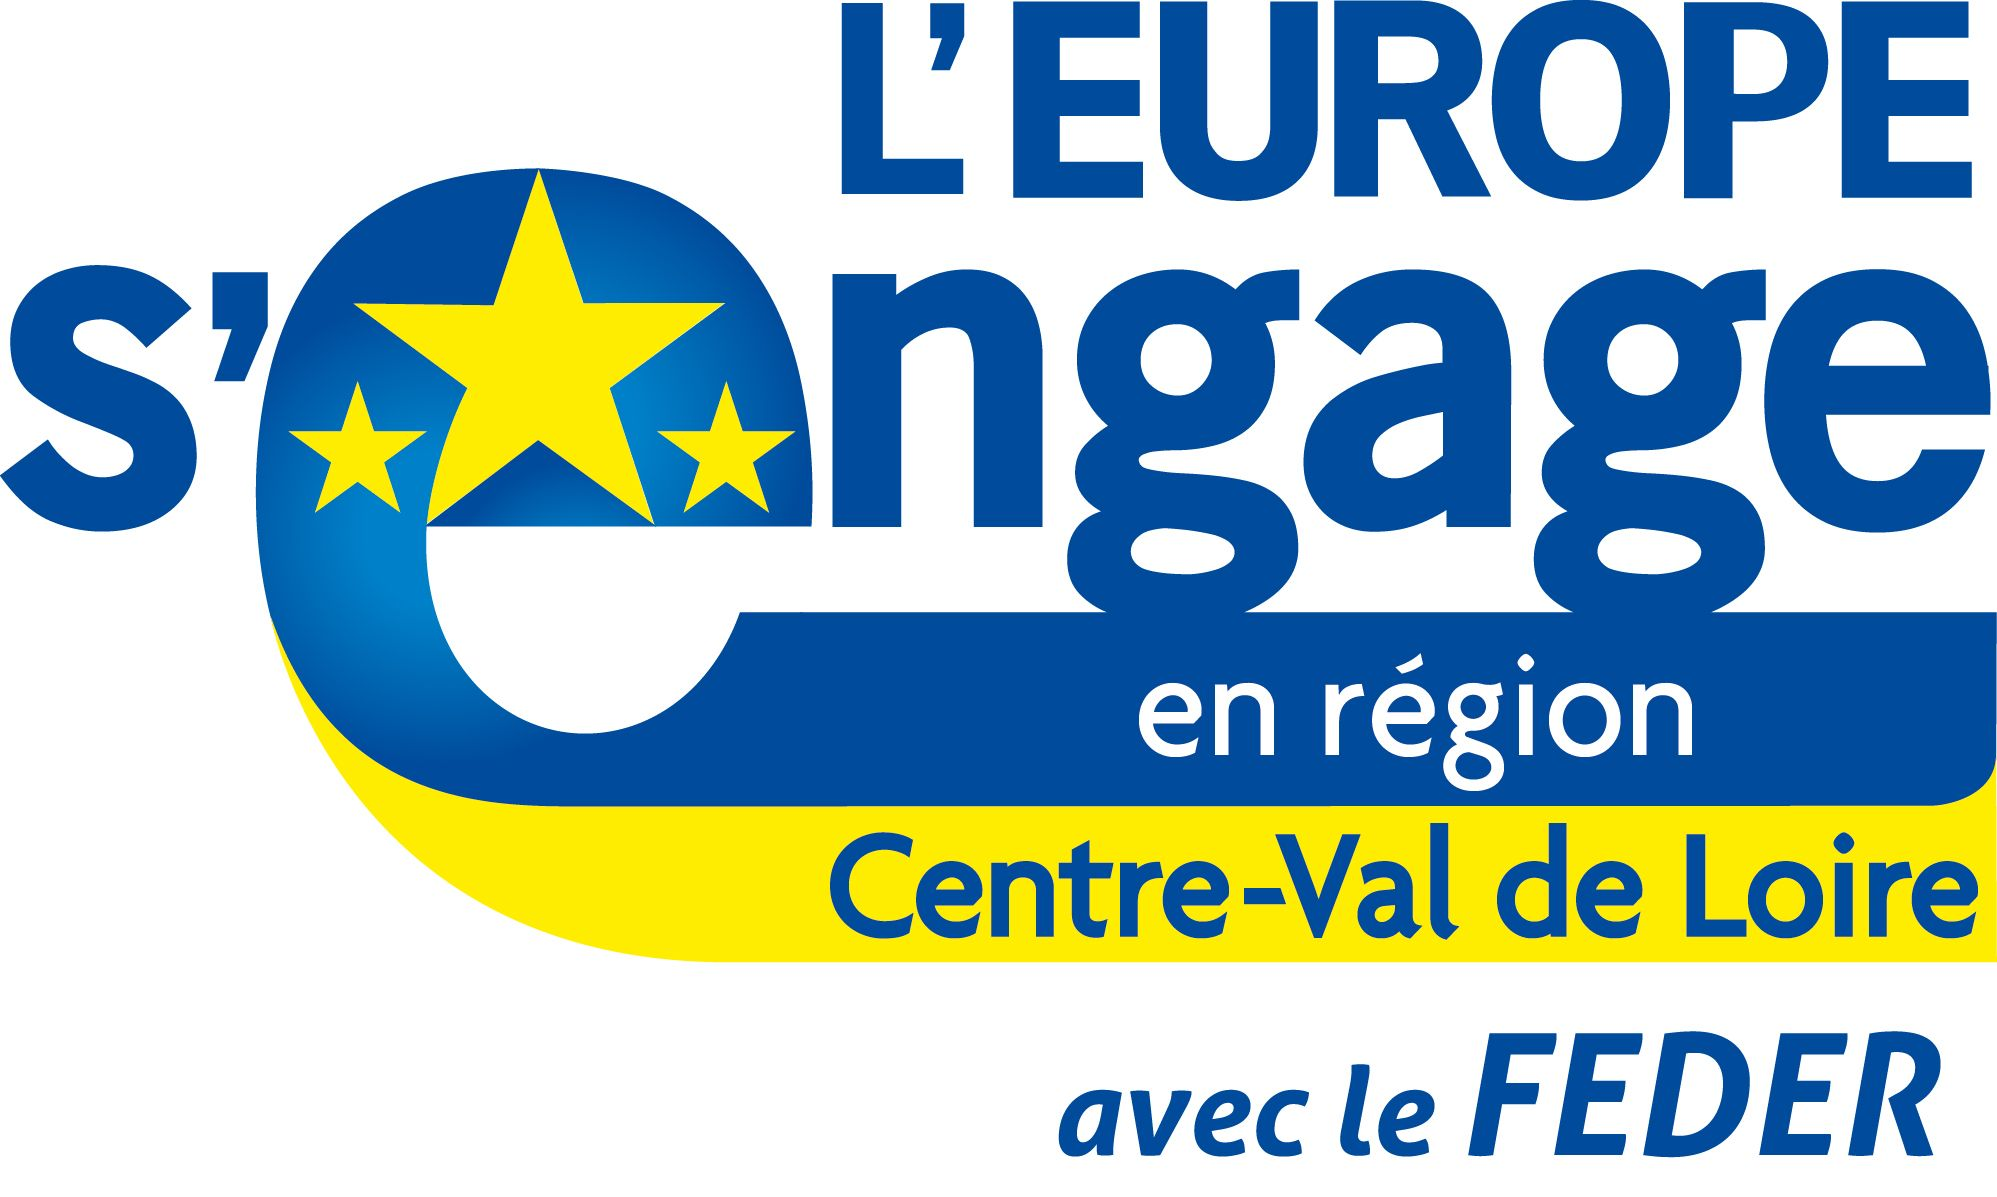 Logo L'Europe s'engage en région